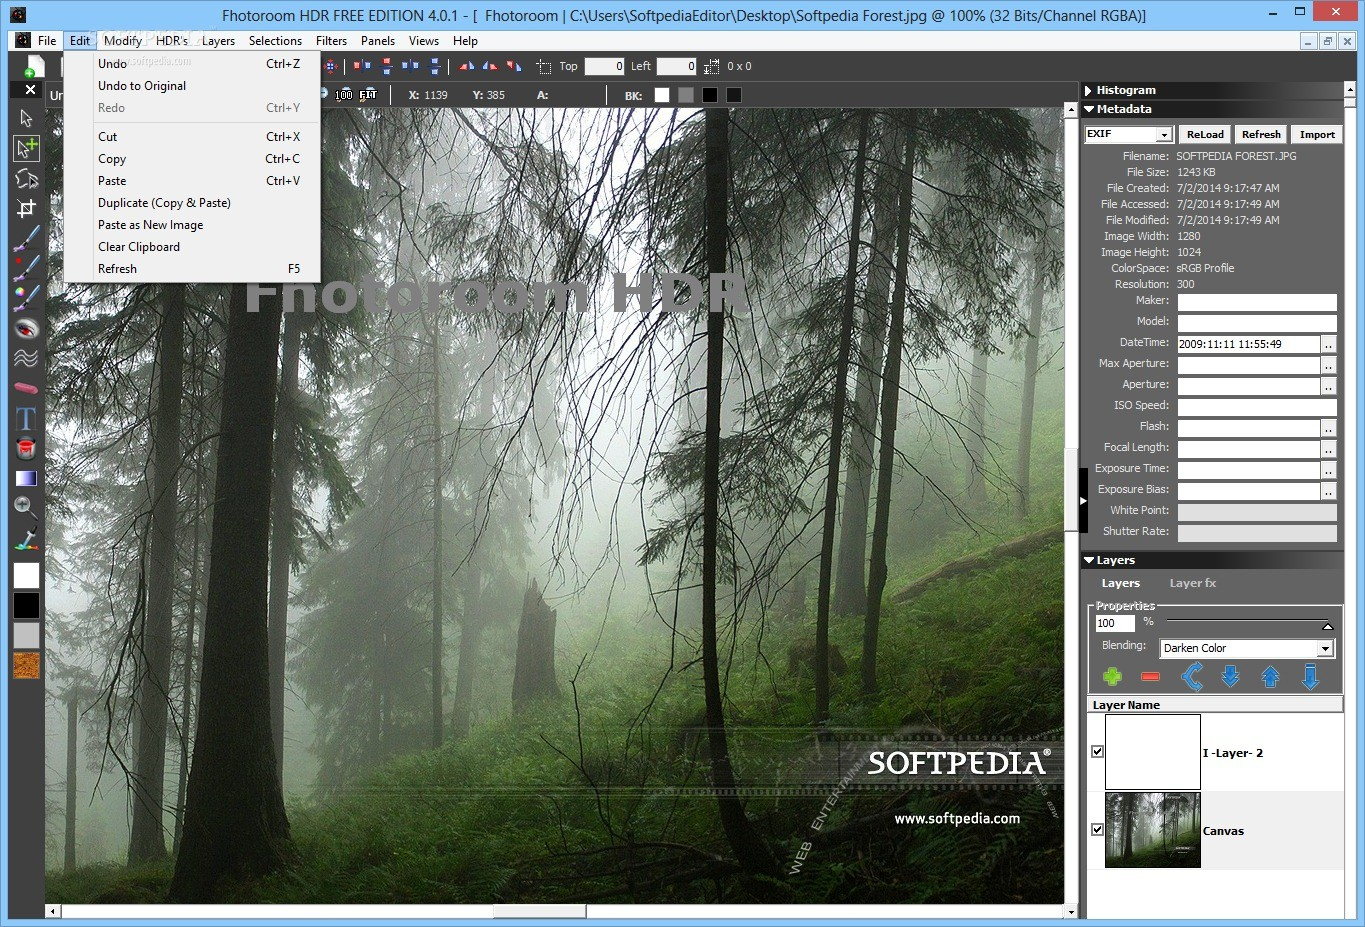 Convert images to HDR using the EXR format - Image converter Free online hdr photo editor